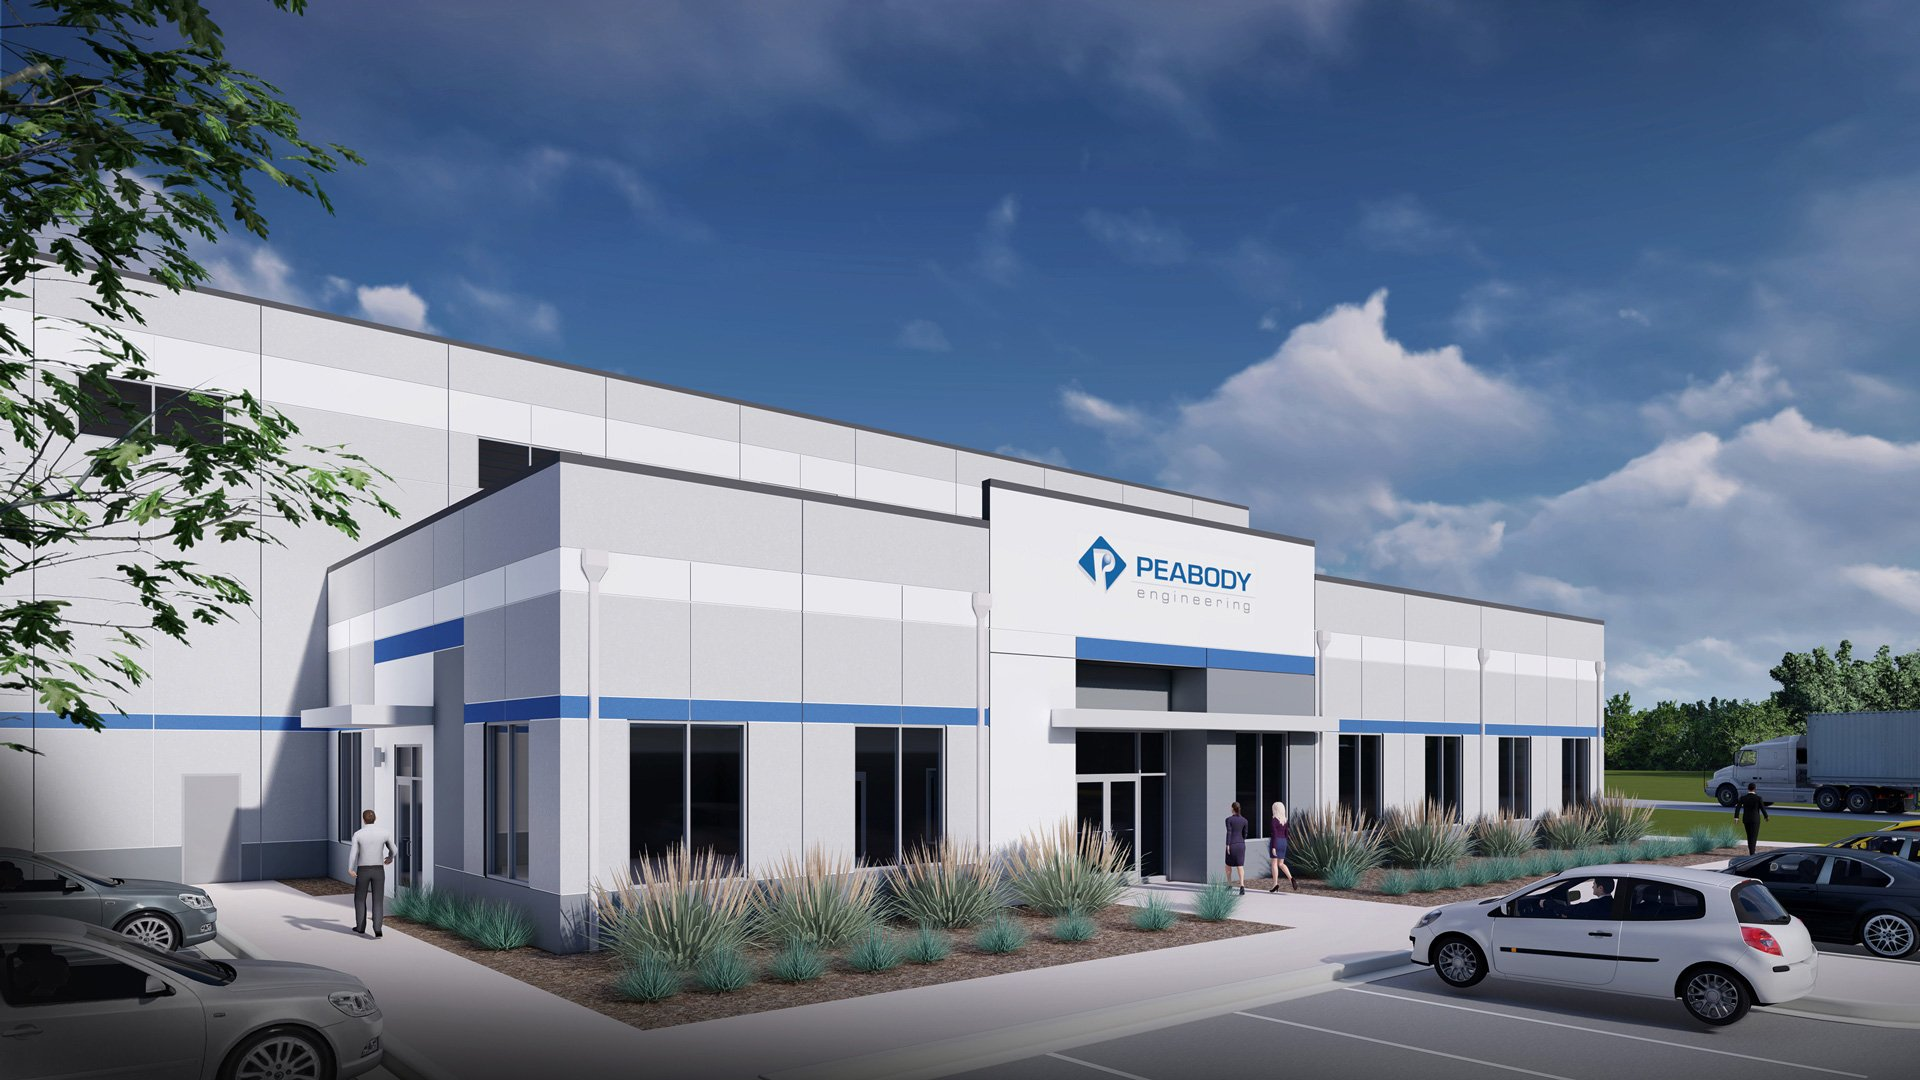 Peabody Engineering & Supply, Inc. To Open in Liberty this Winter